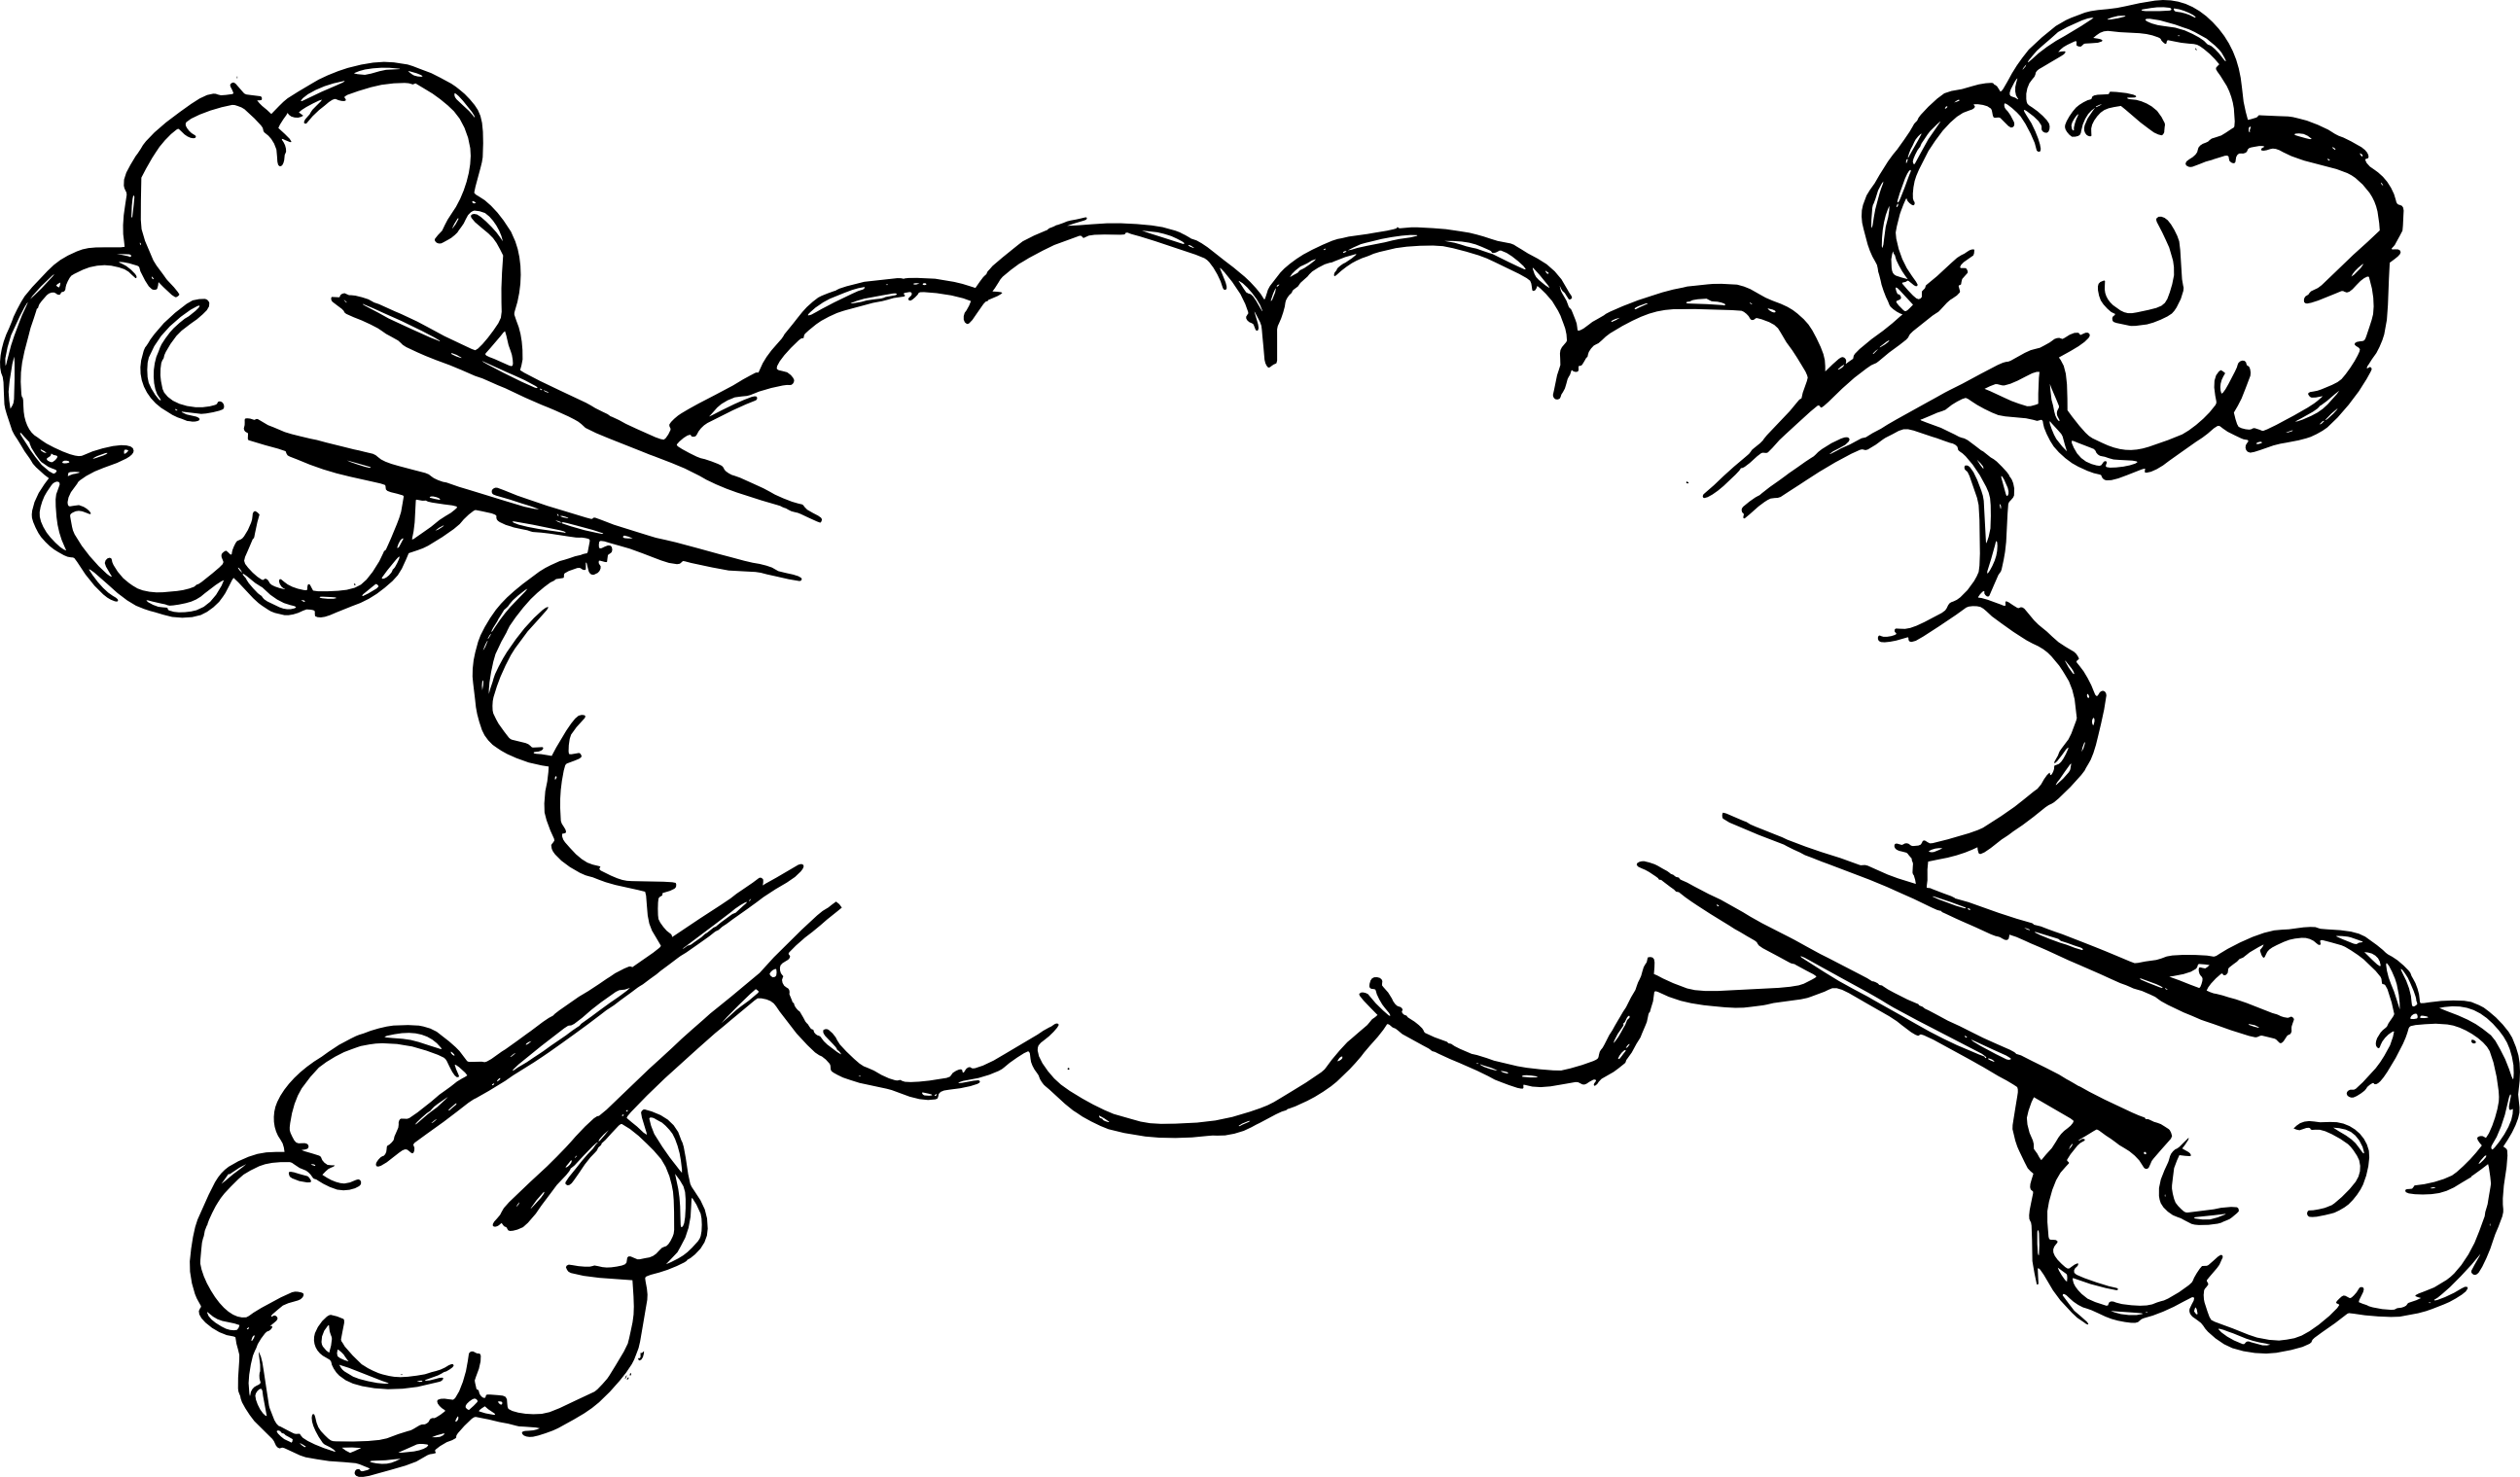 Comic word bubble png. Hand drawn speech explosion